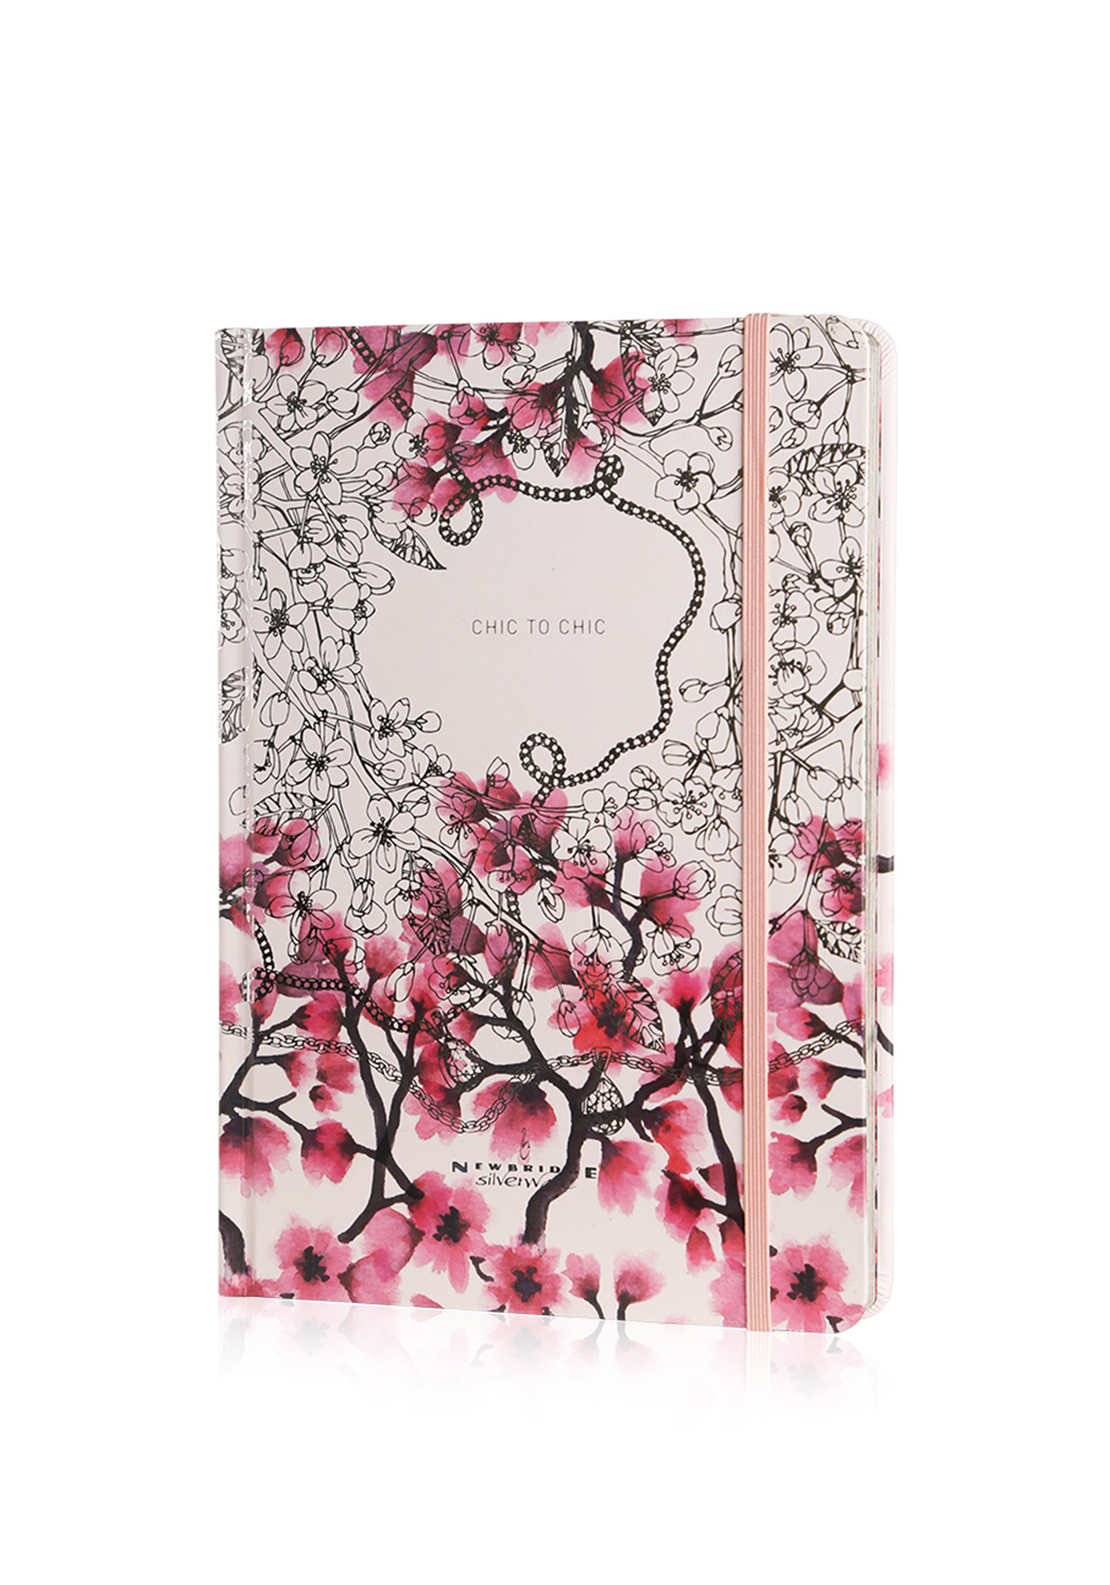 Newbridge Notebook Pink, Chic to Chic